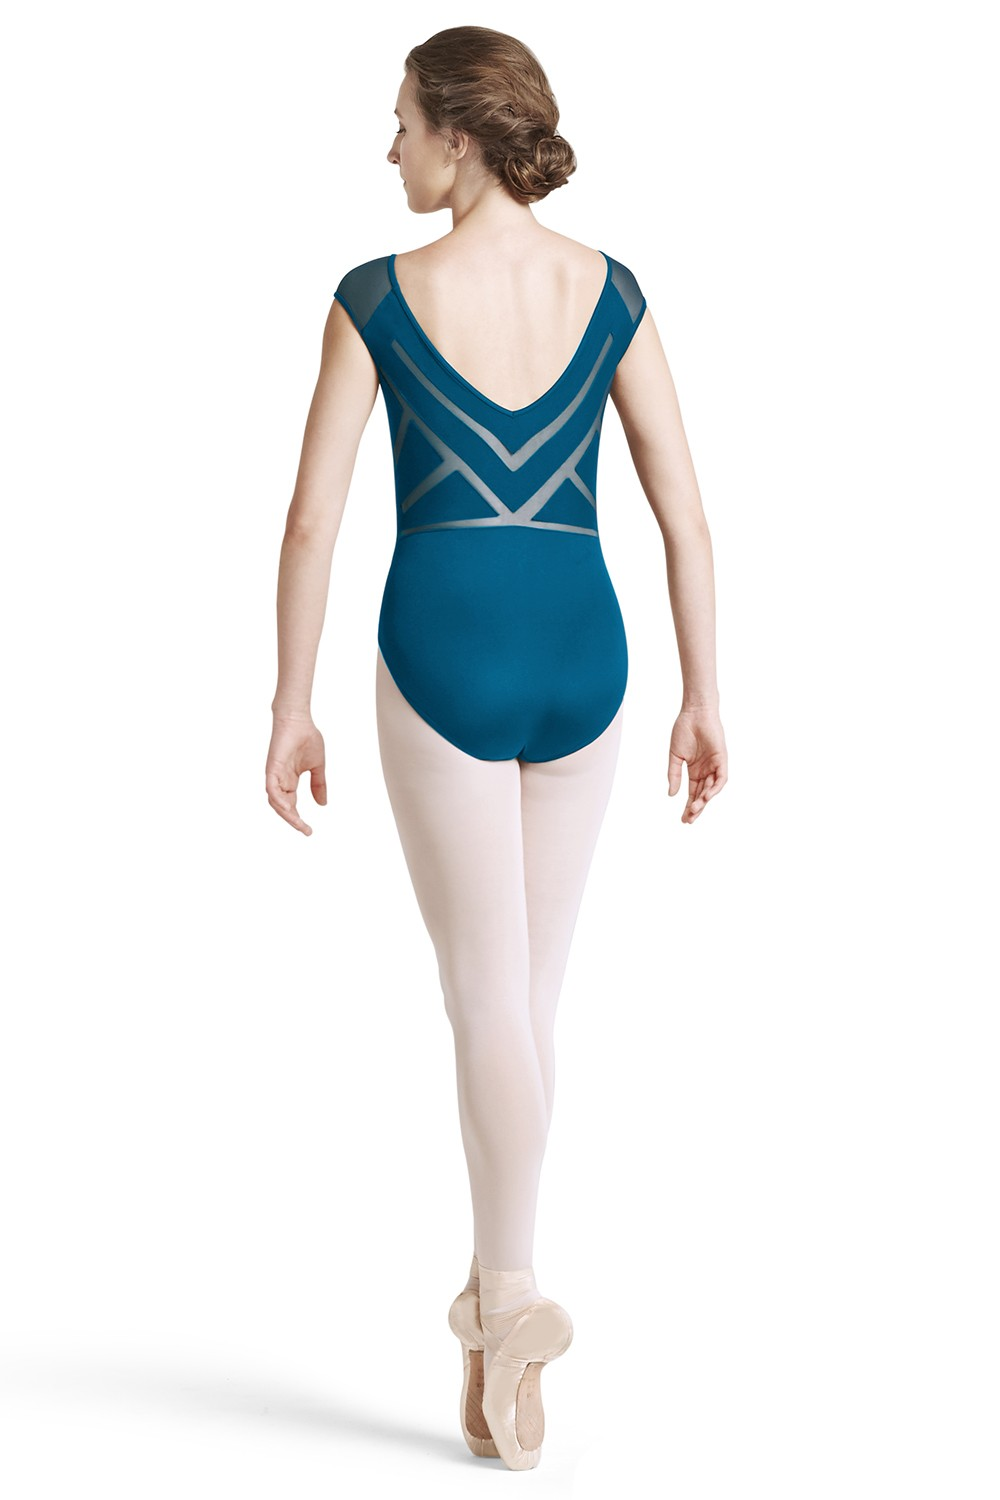 Daya Women's Dance Leotards